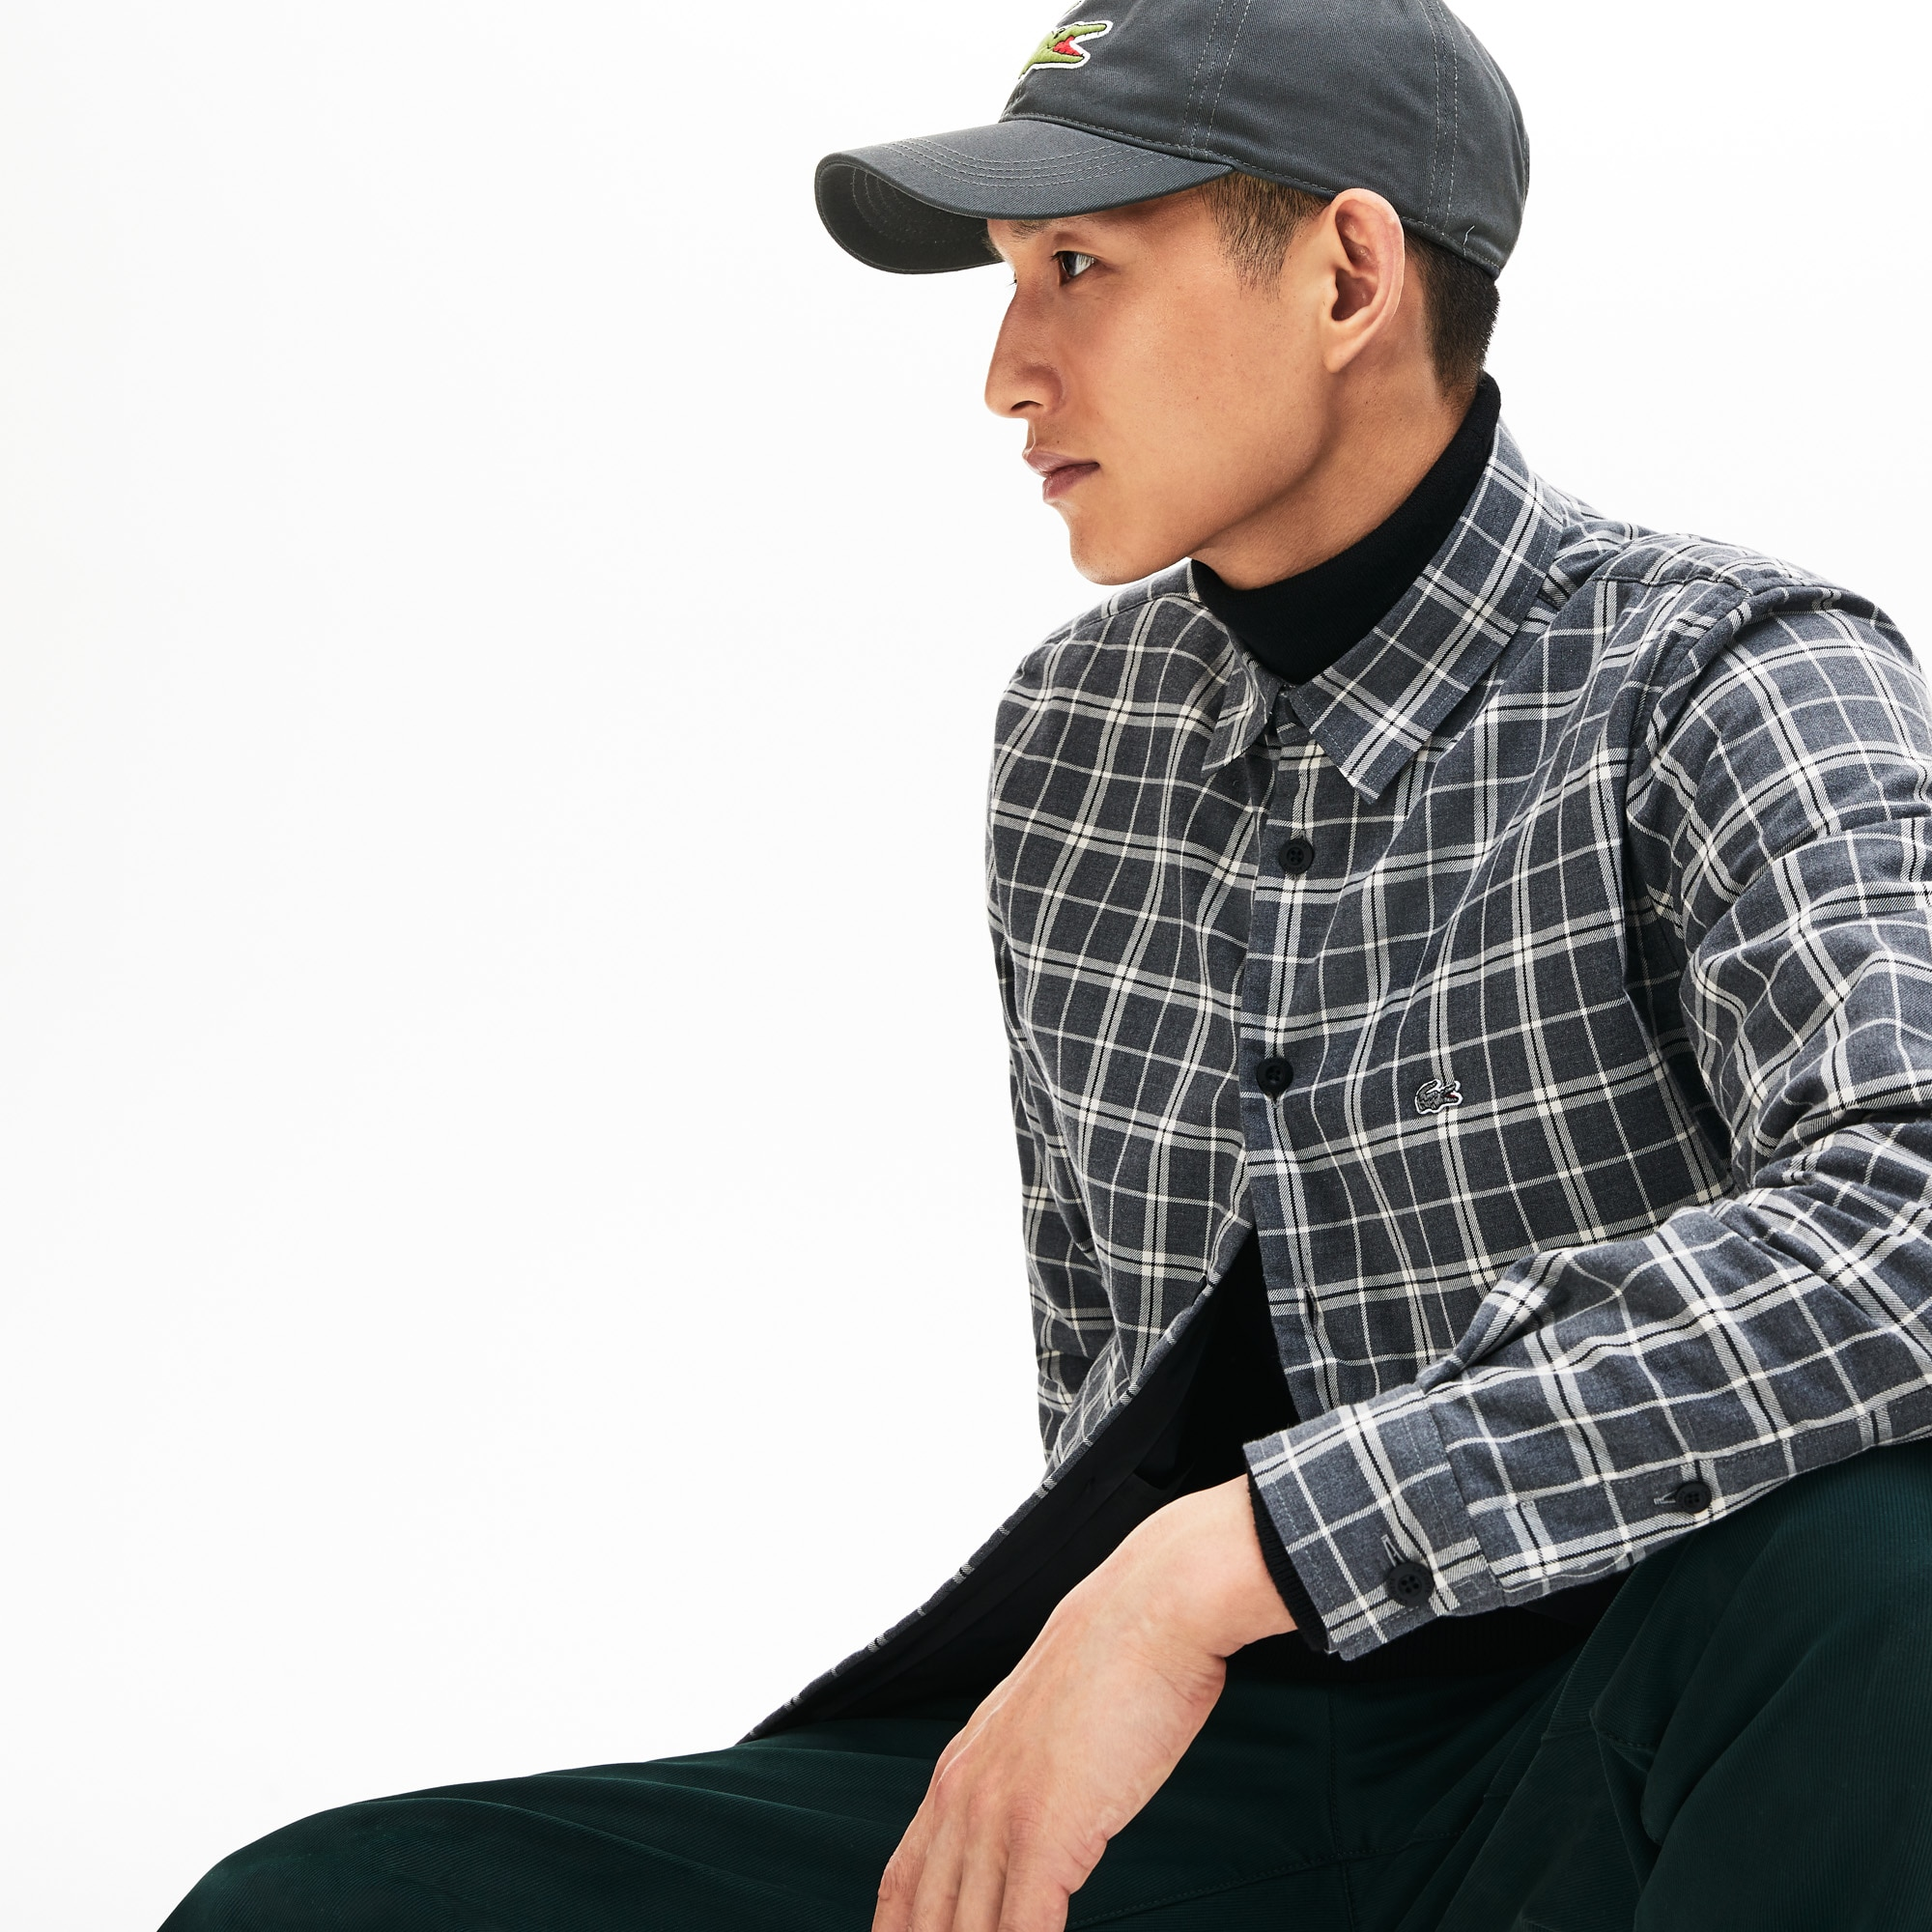 Gabardine cap with oversized crocodile